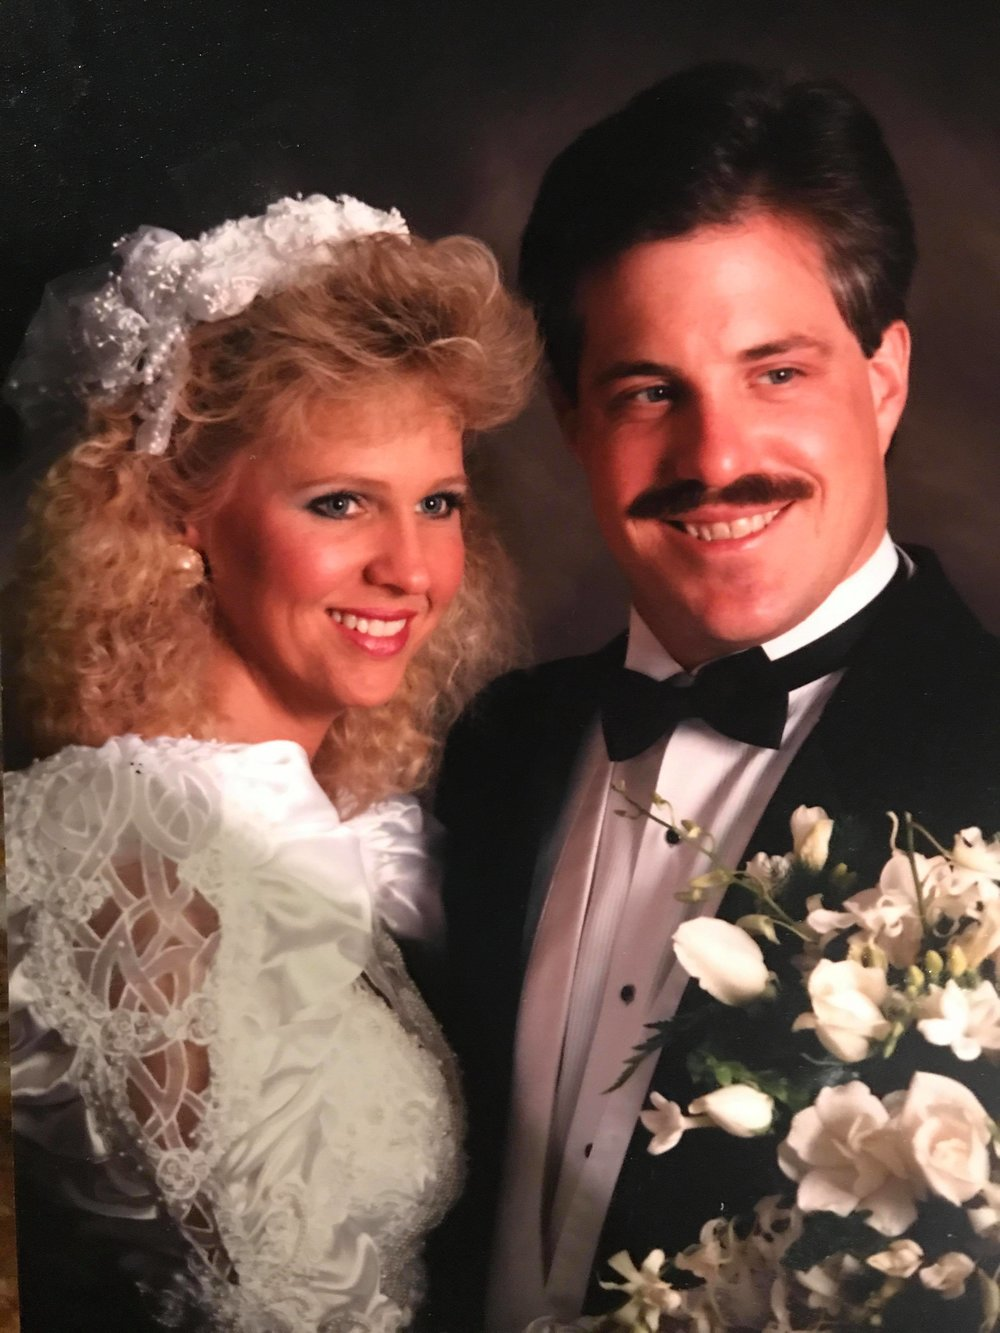 80's wedding photo